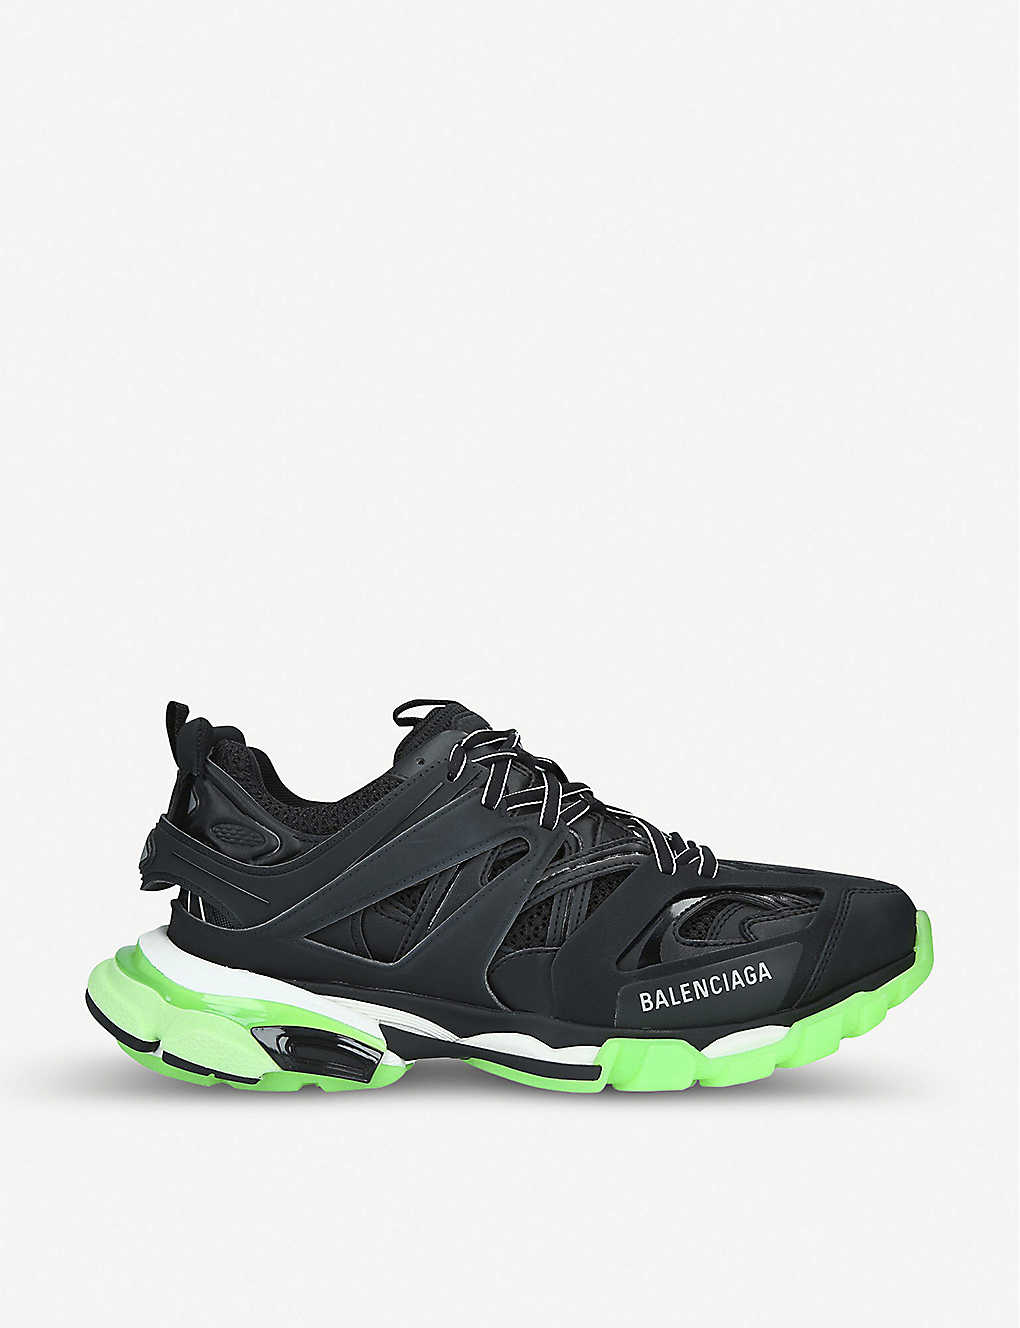 BALENCIAGA: Track nylon and mesh glow-in-the-dark trainers